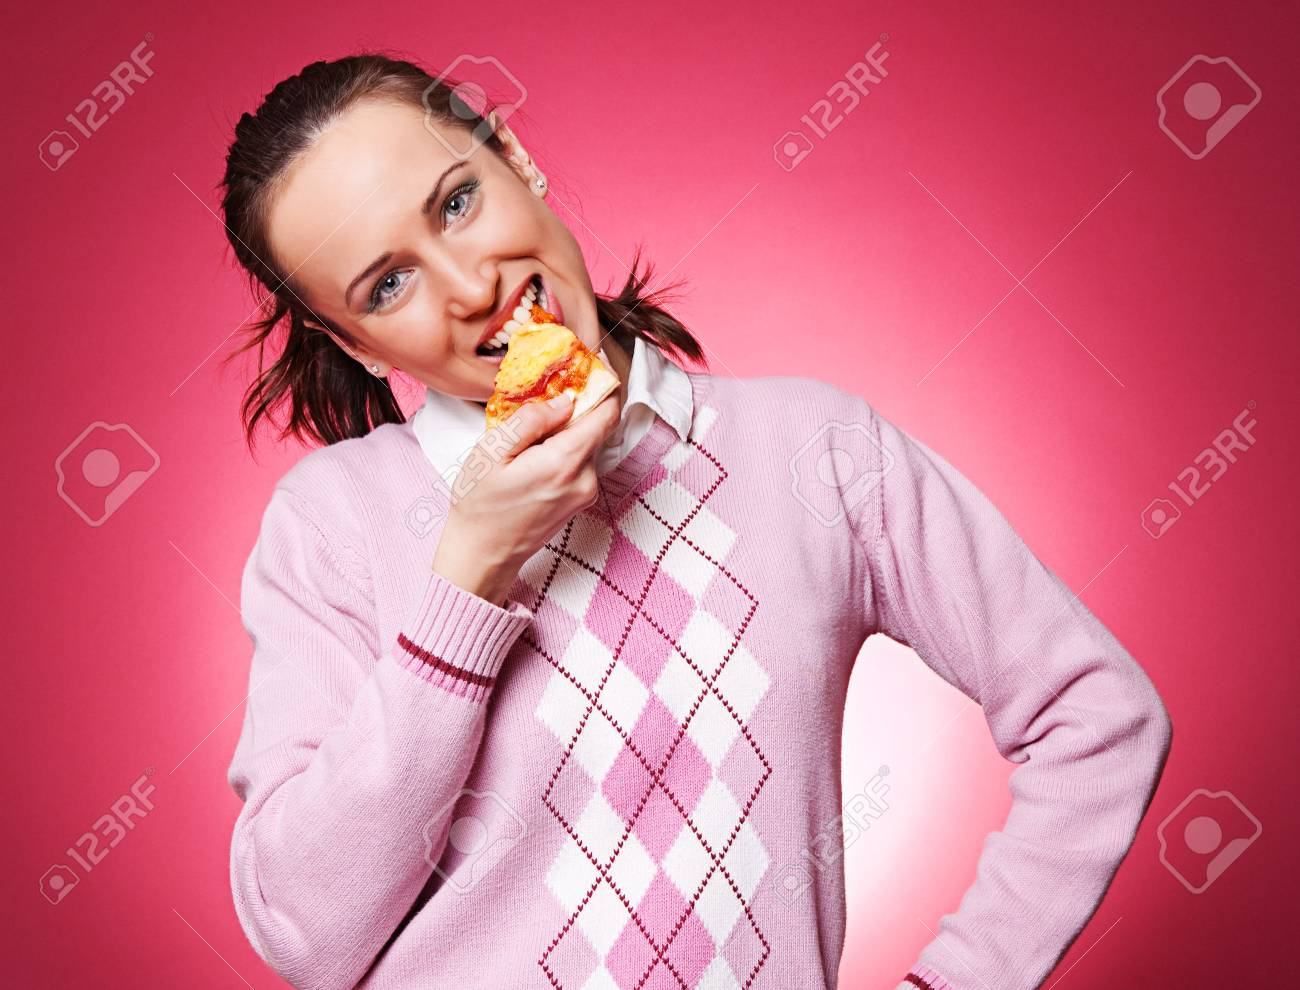 casual woman eating pizza over pink background Stock Photo - 4189664